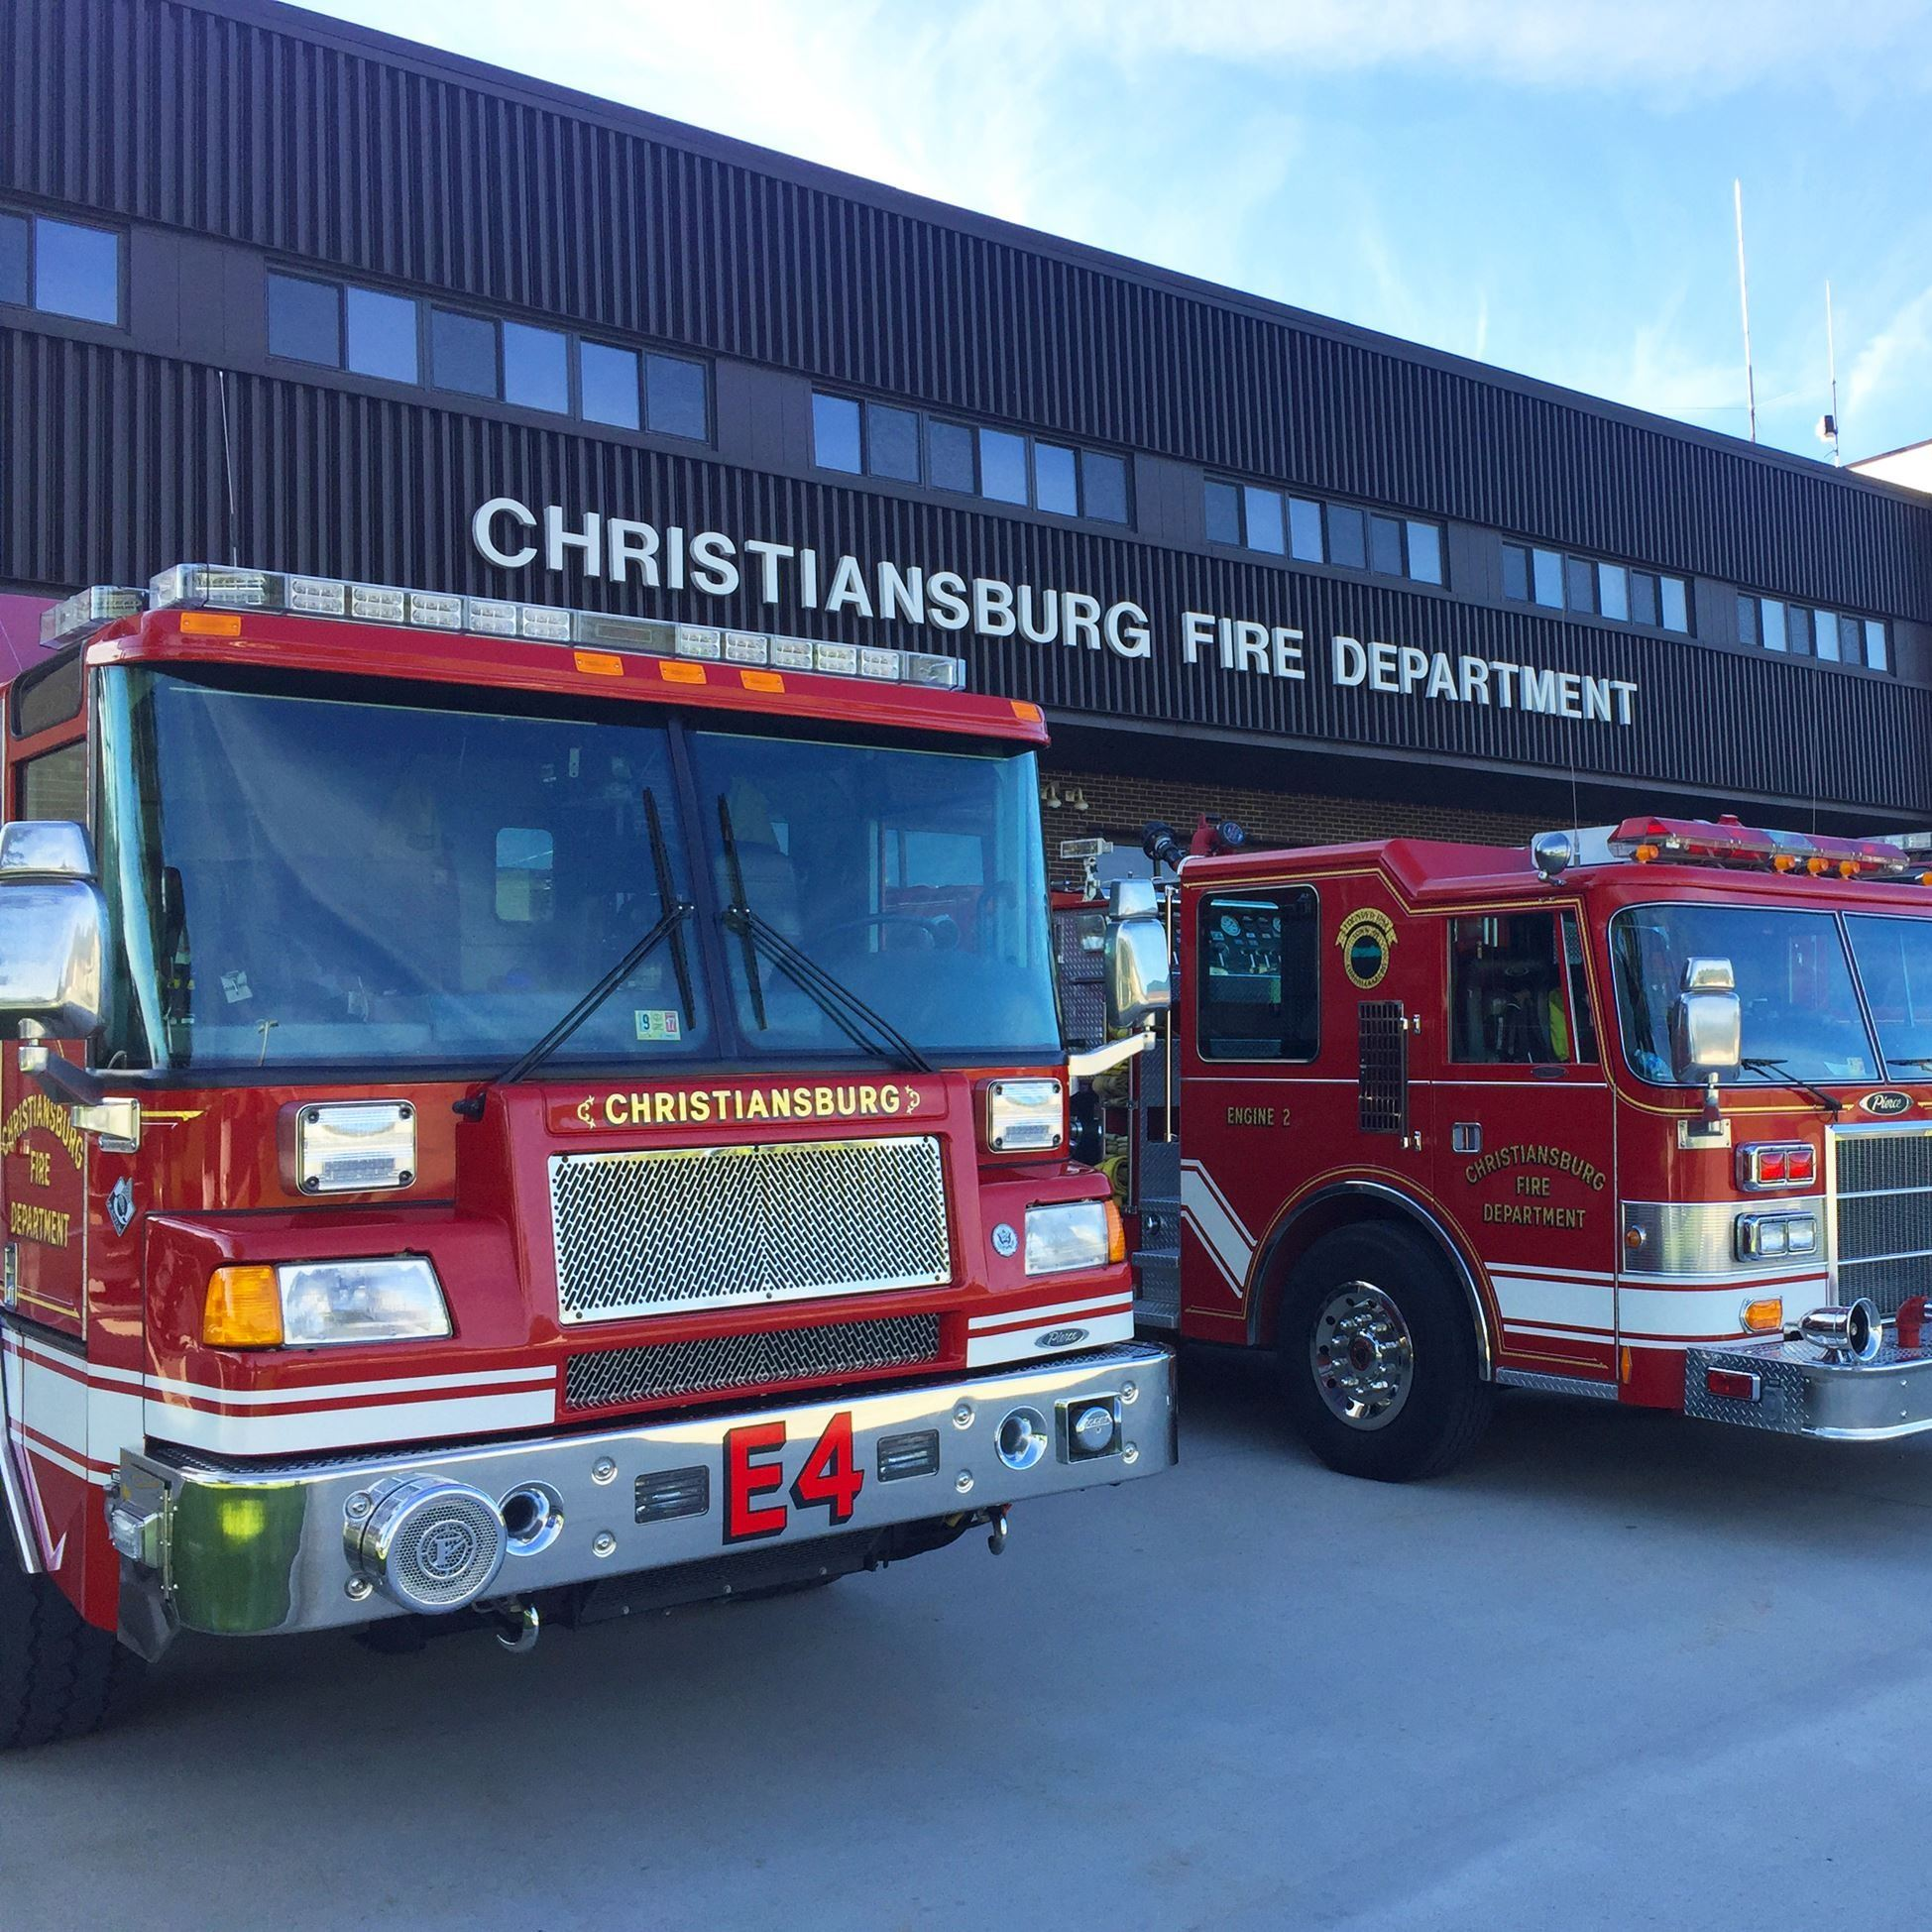 Christiansburg Volunteer Fire Department Firetrucks